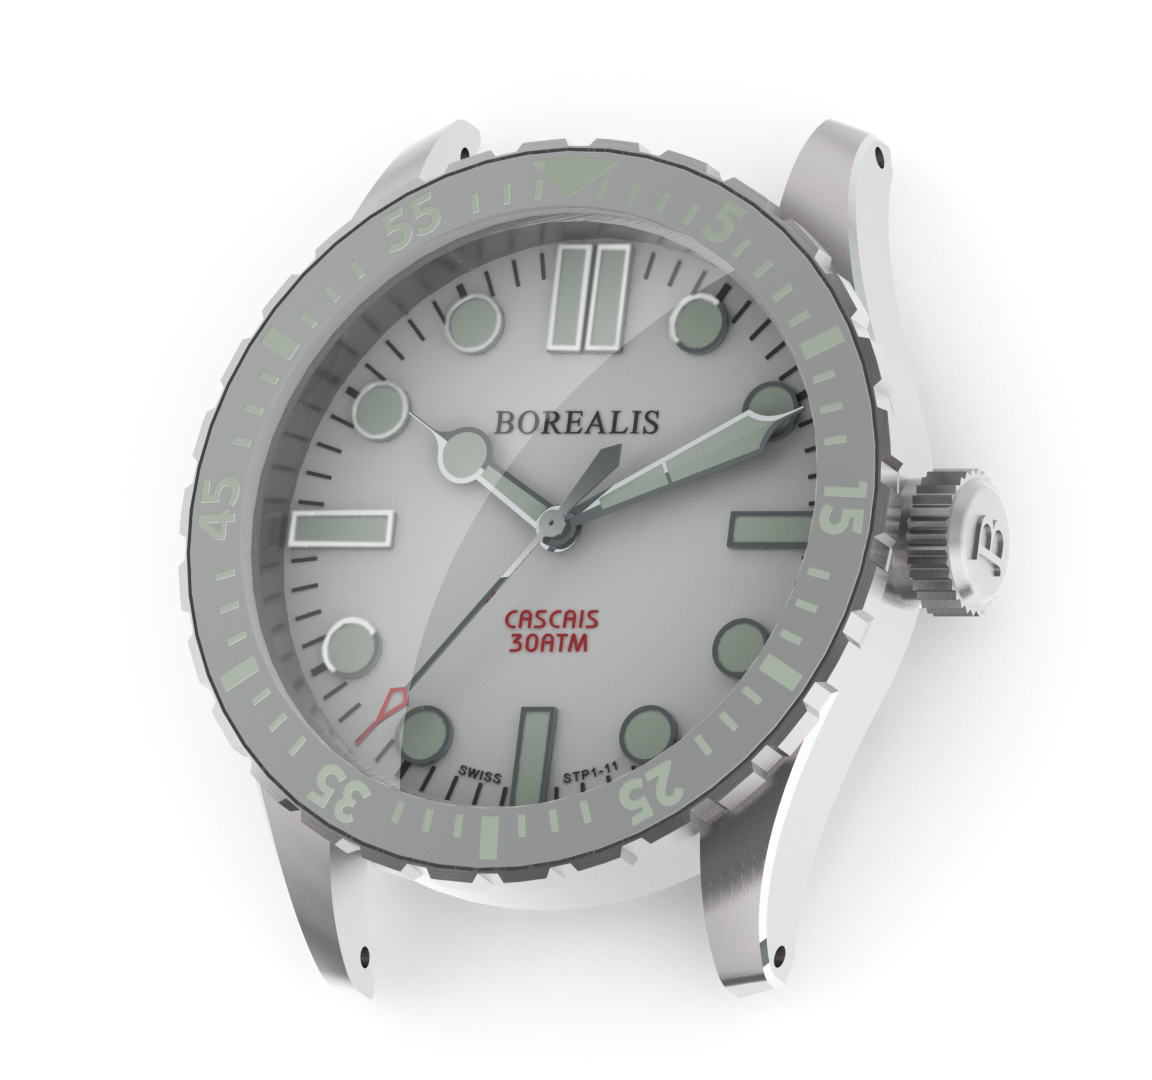 Borealis Cascais White Dial Cathedral Hands No Date C3 X1 Lume BCSCWHITEDCHNODATE